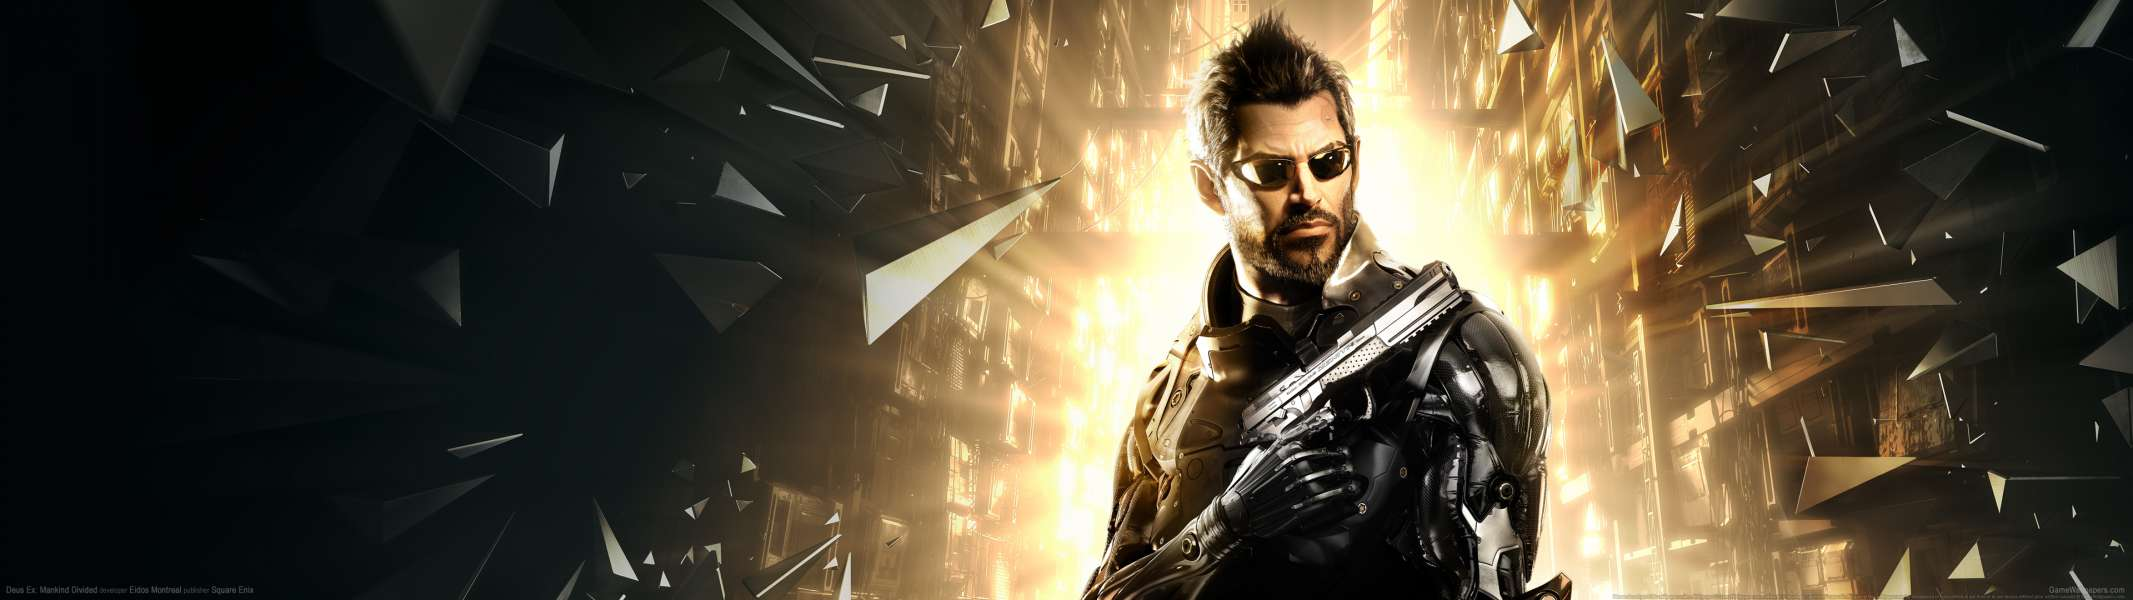 Deus Ex: Mankind Divided dual screen achtergrond